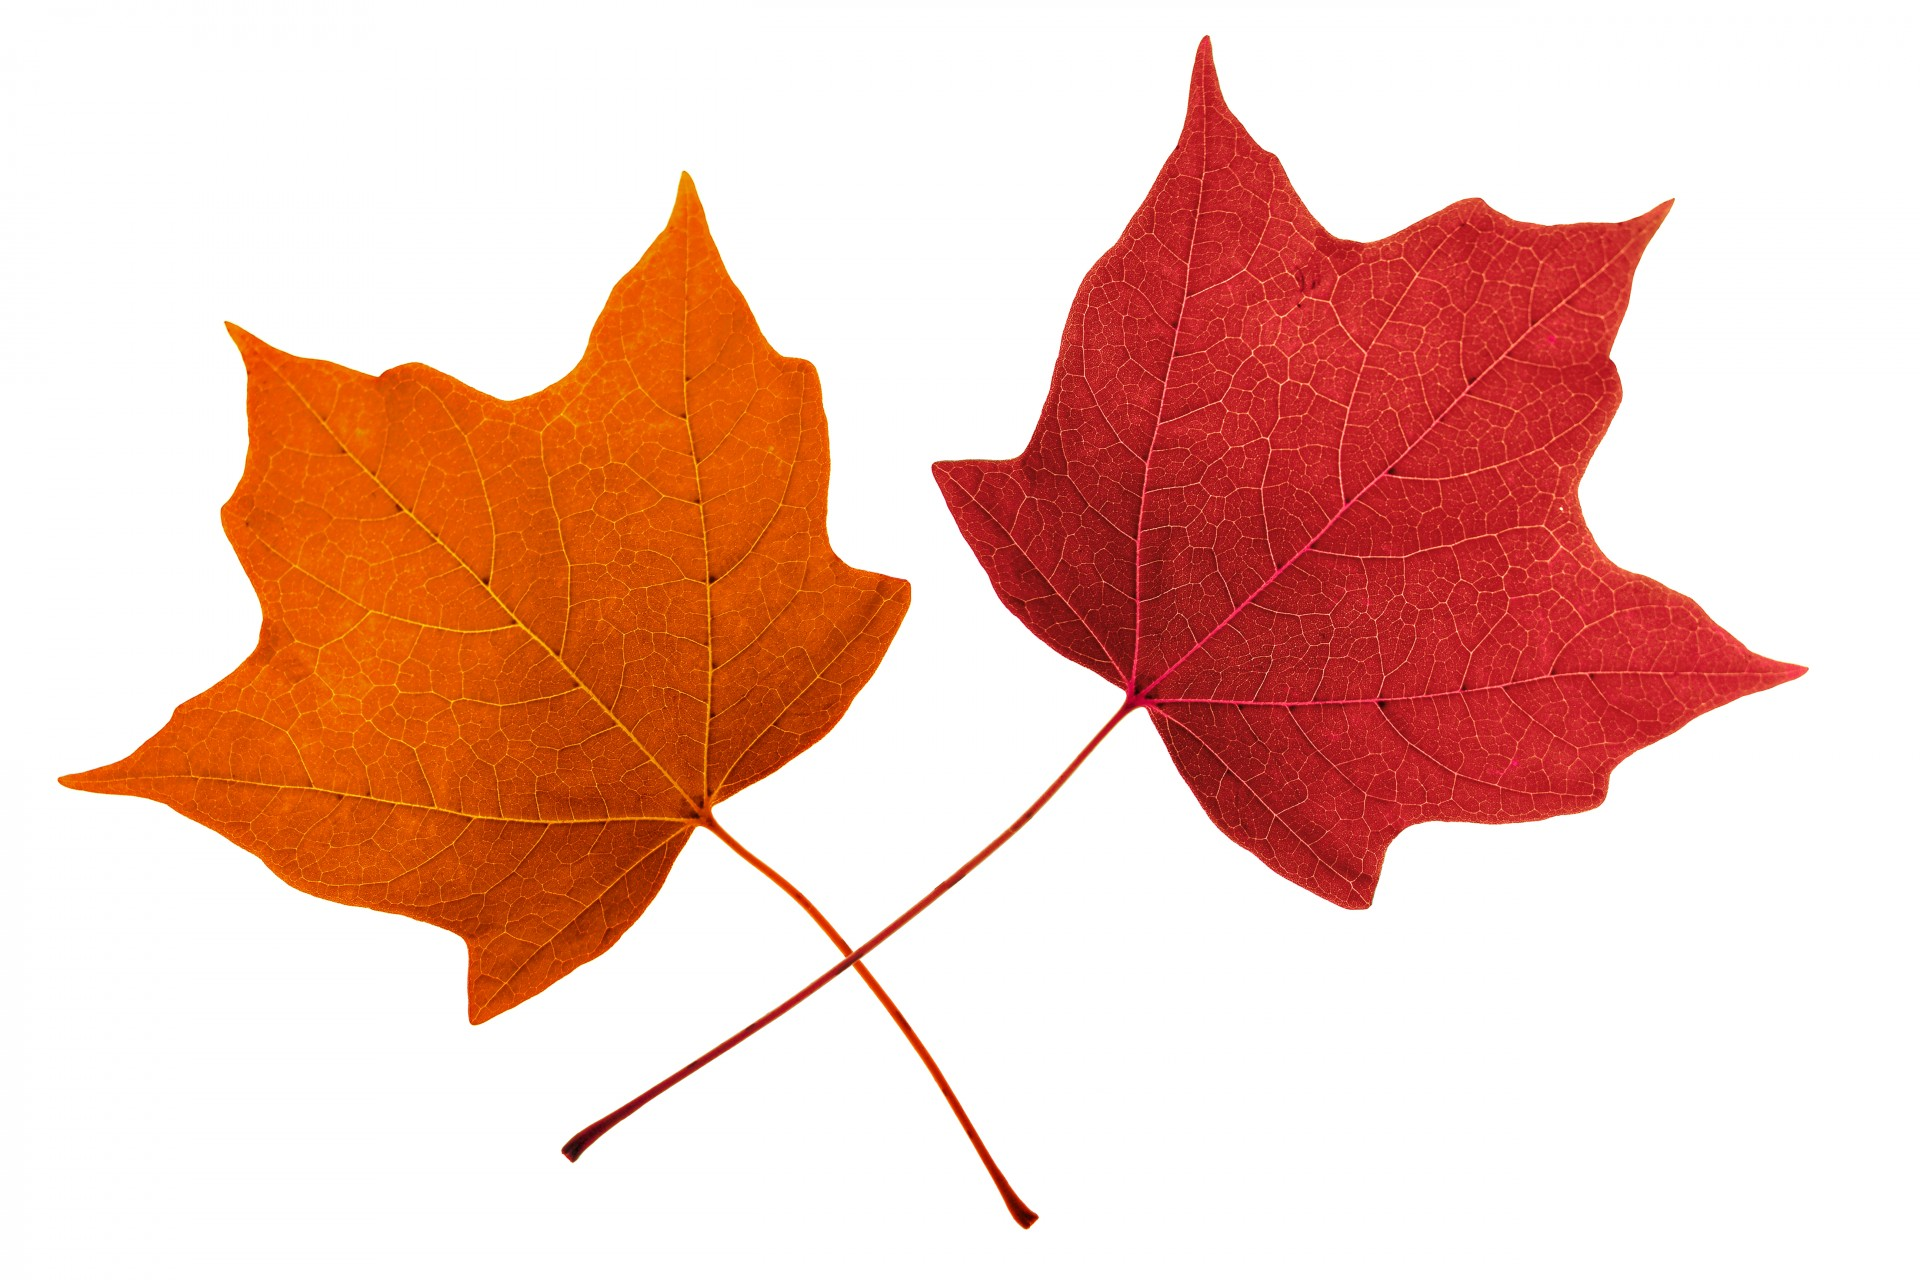 hight resolution of 1920x1280 free leaf clipart 4793652